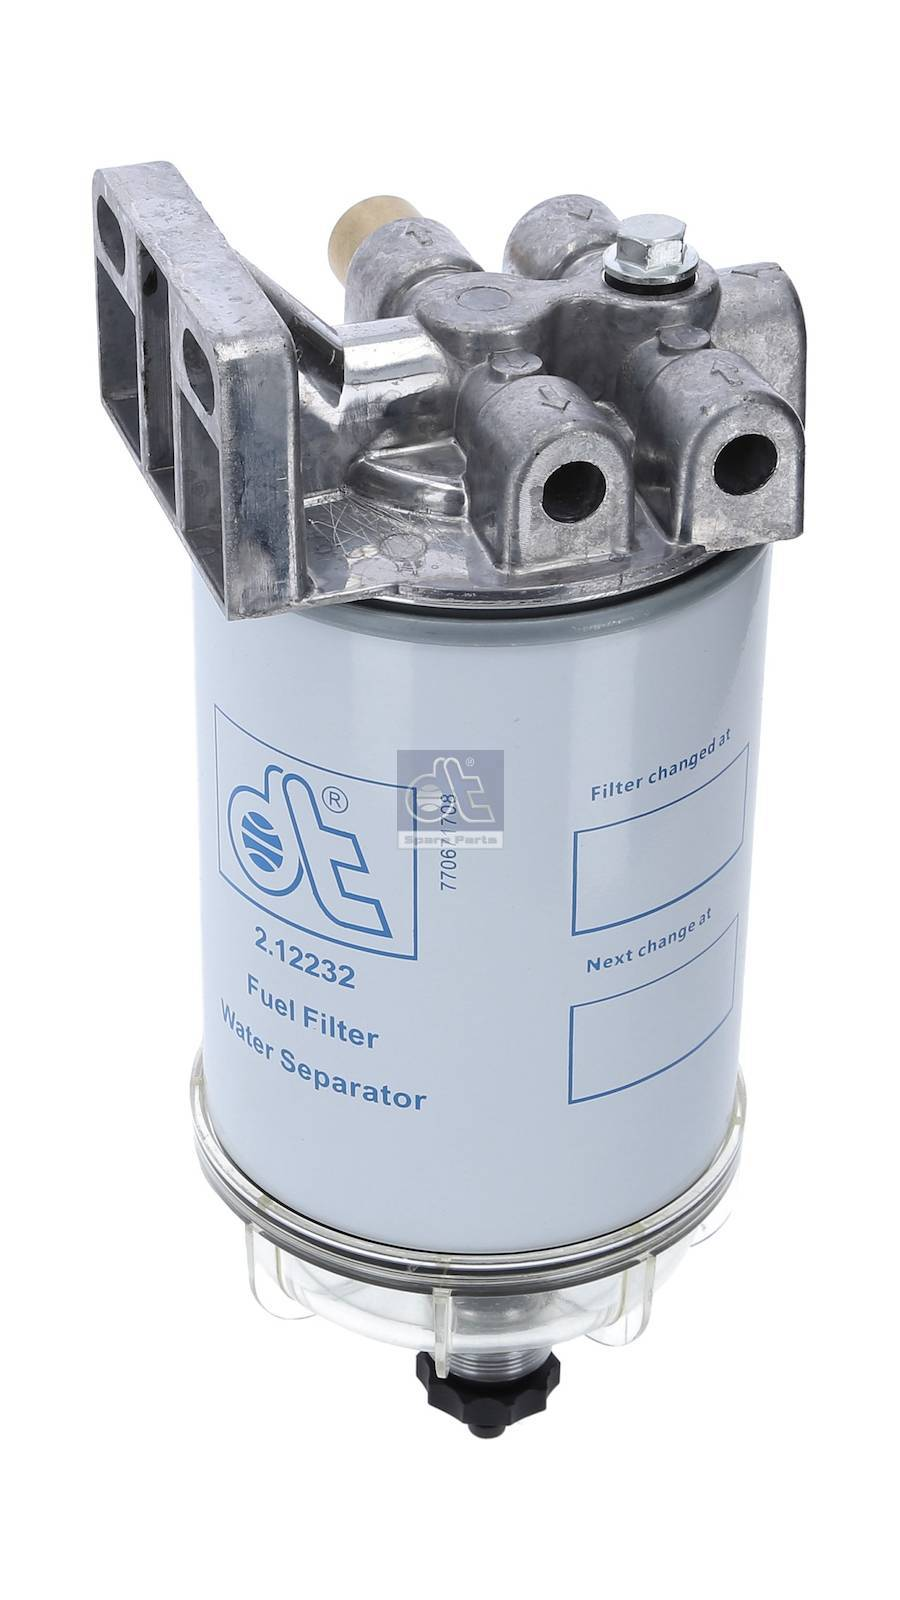 Fuel filter, complete